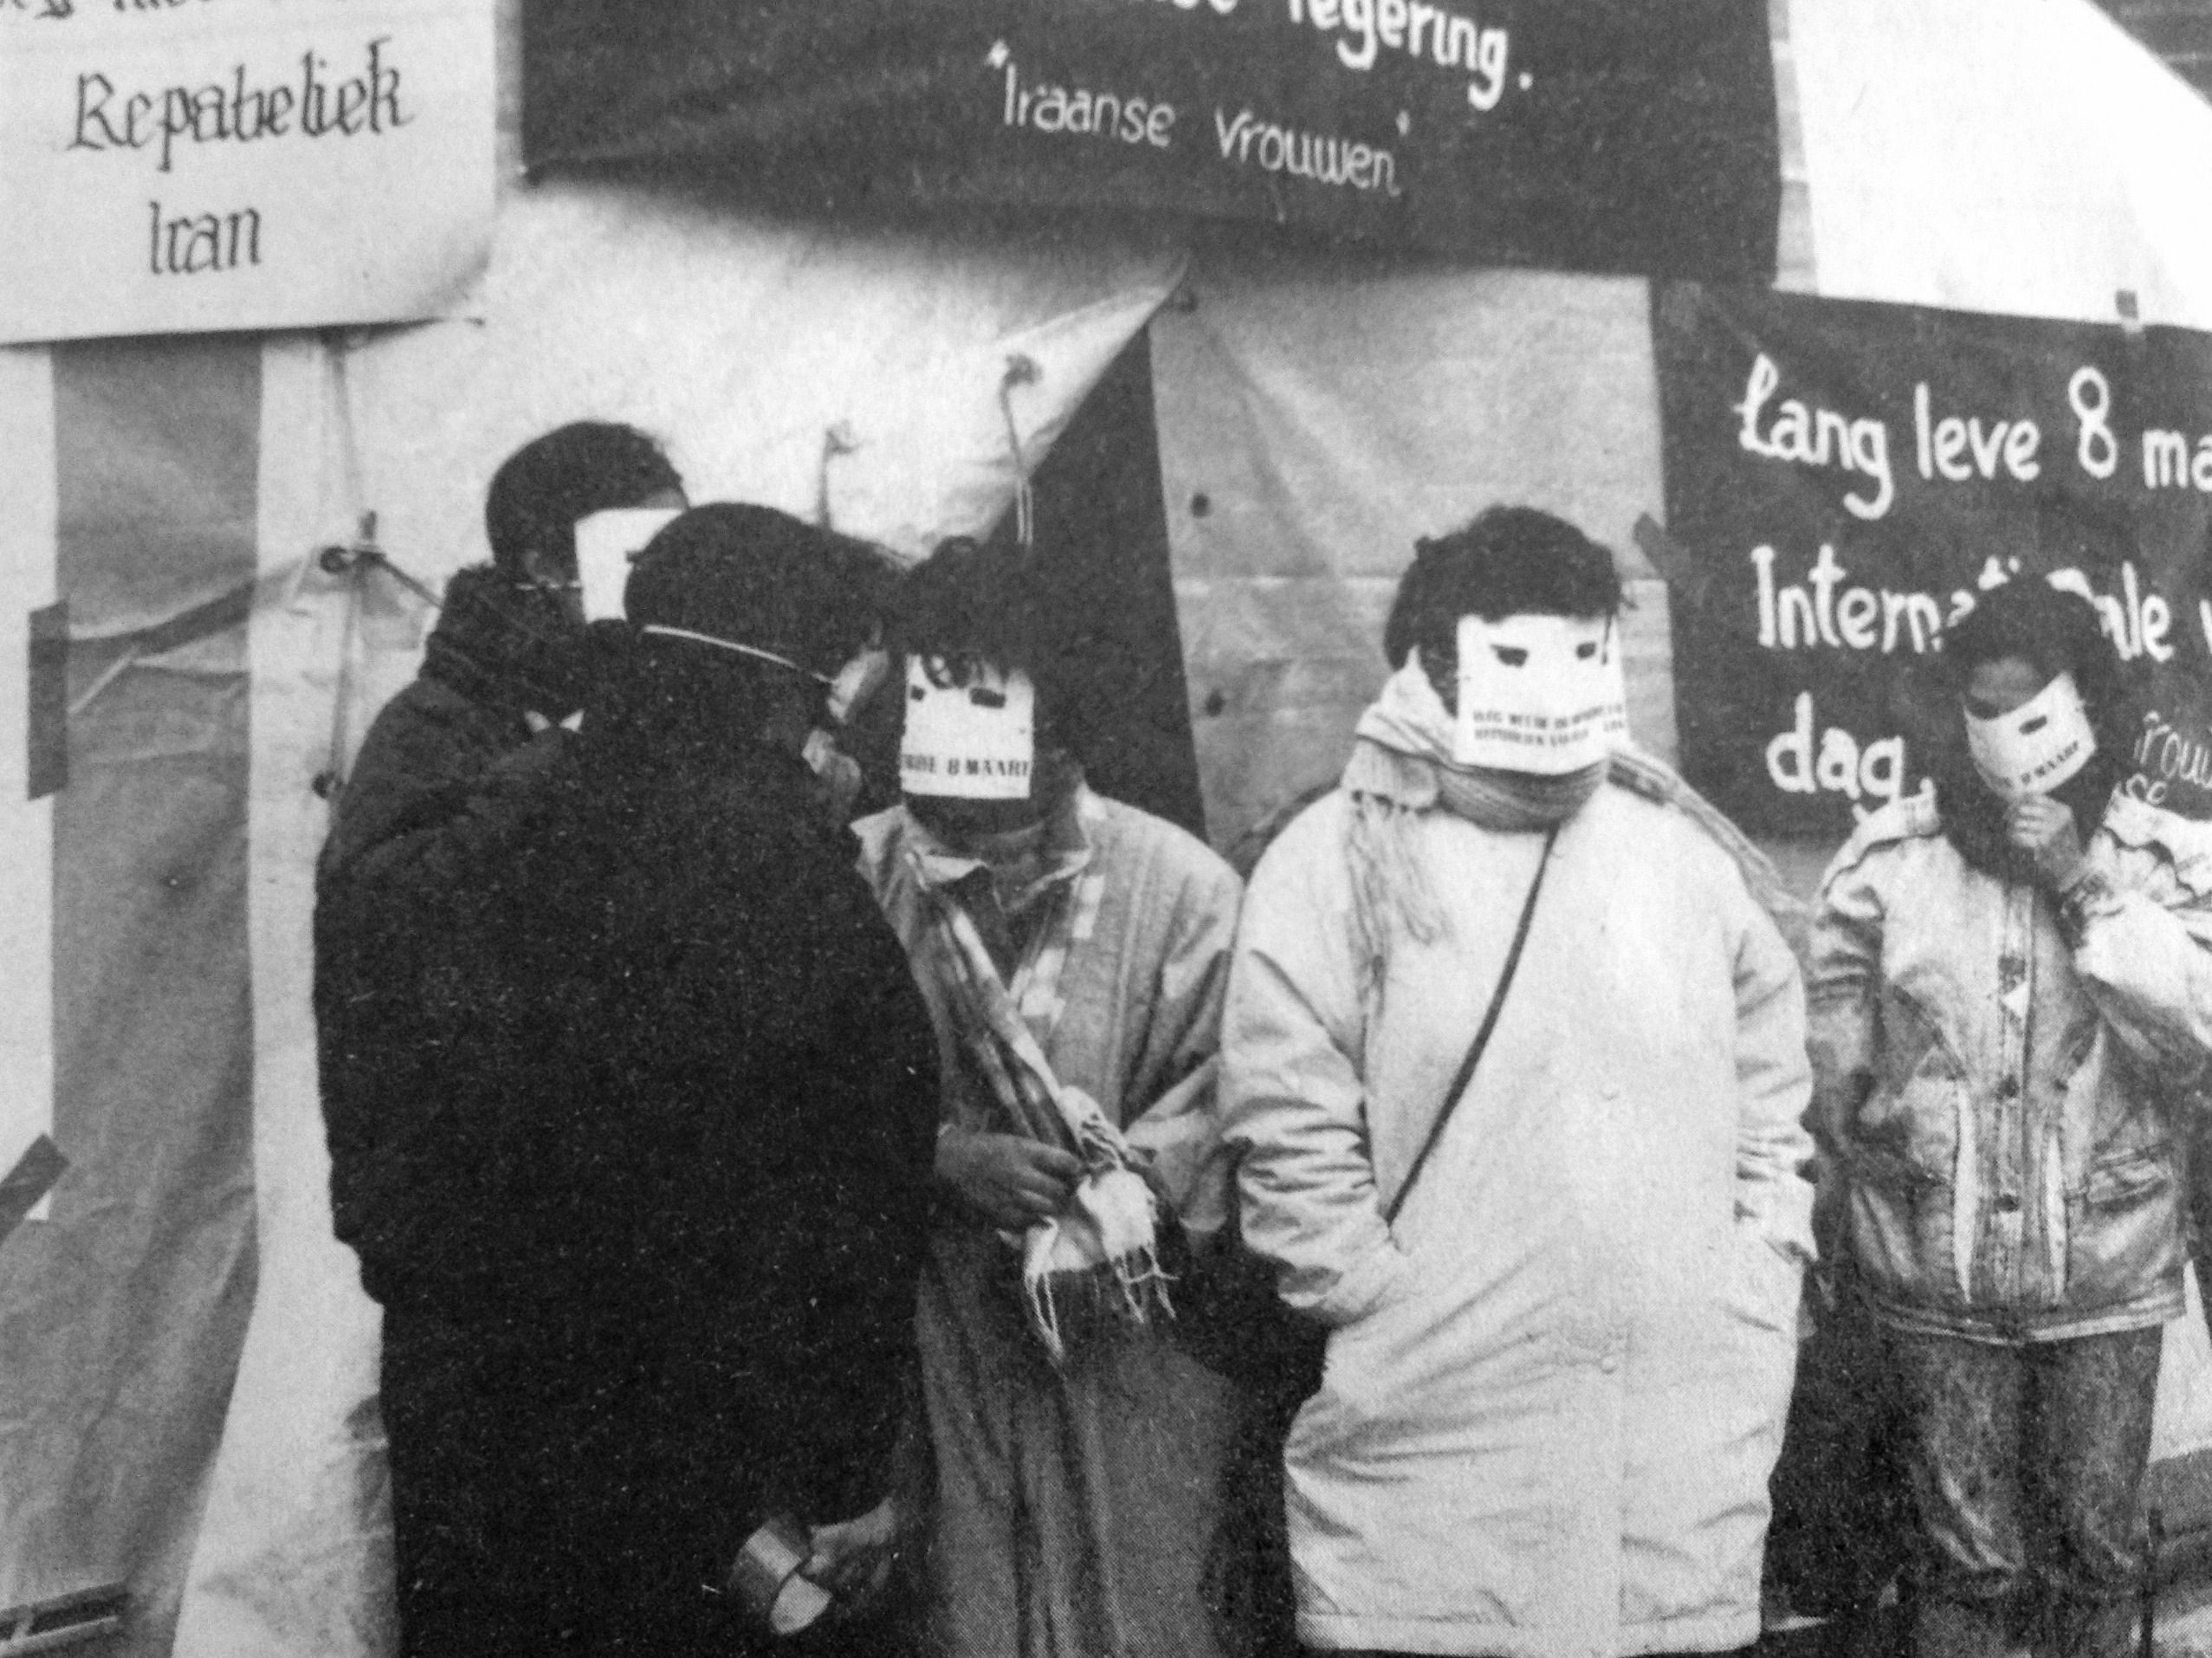 Iranian women on woman's day. The Netherlands, march 8, 1991.